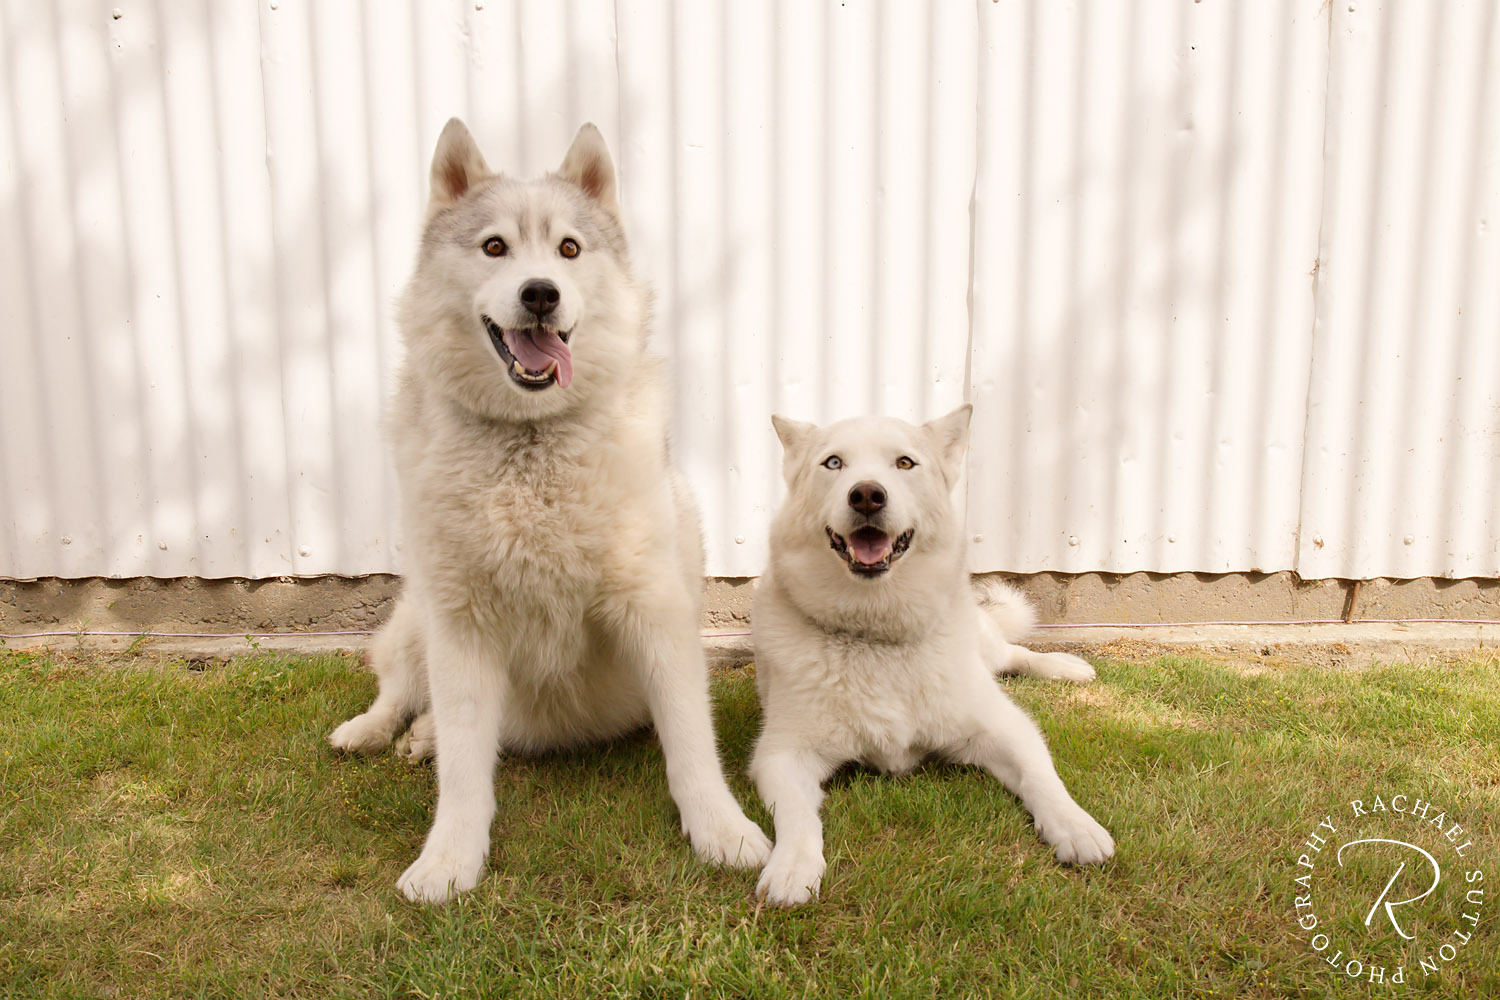 Dog Photo, Two Siberian Huskies sitting together in from of shed